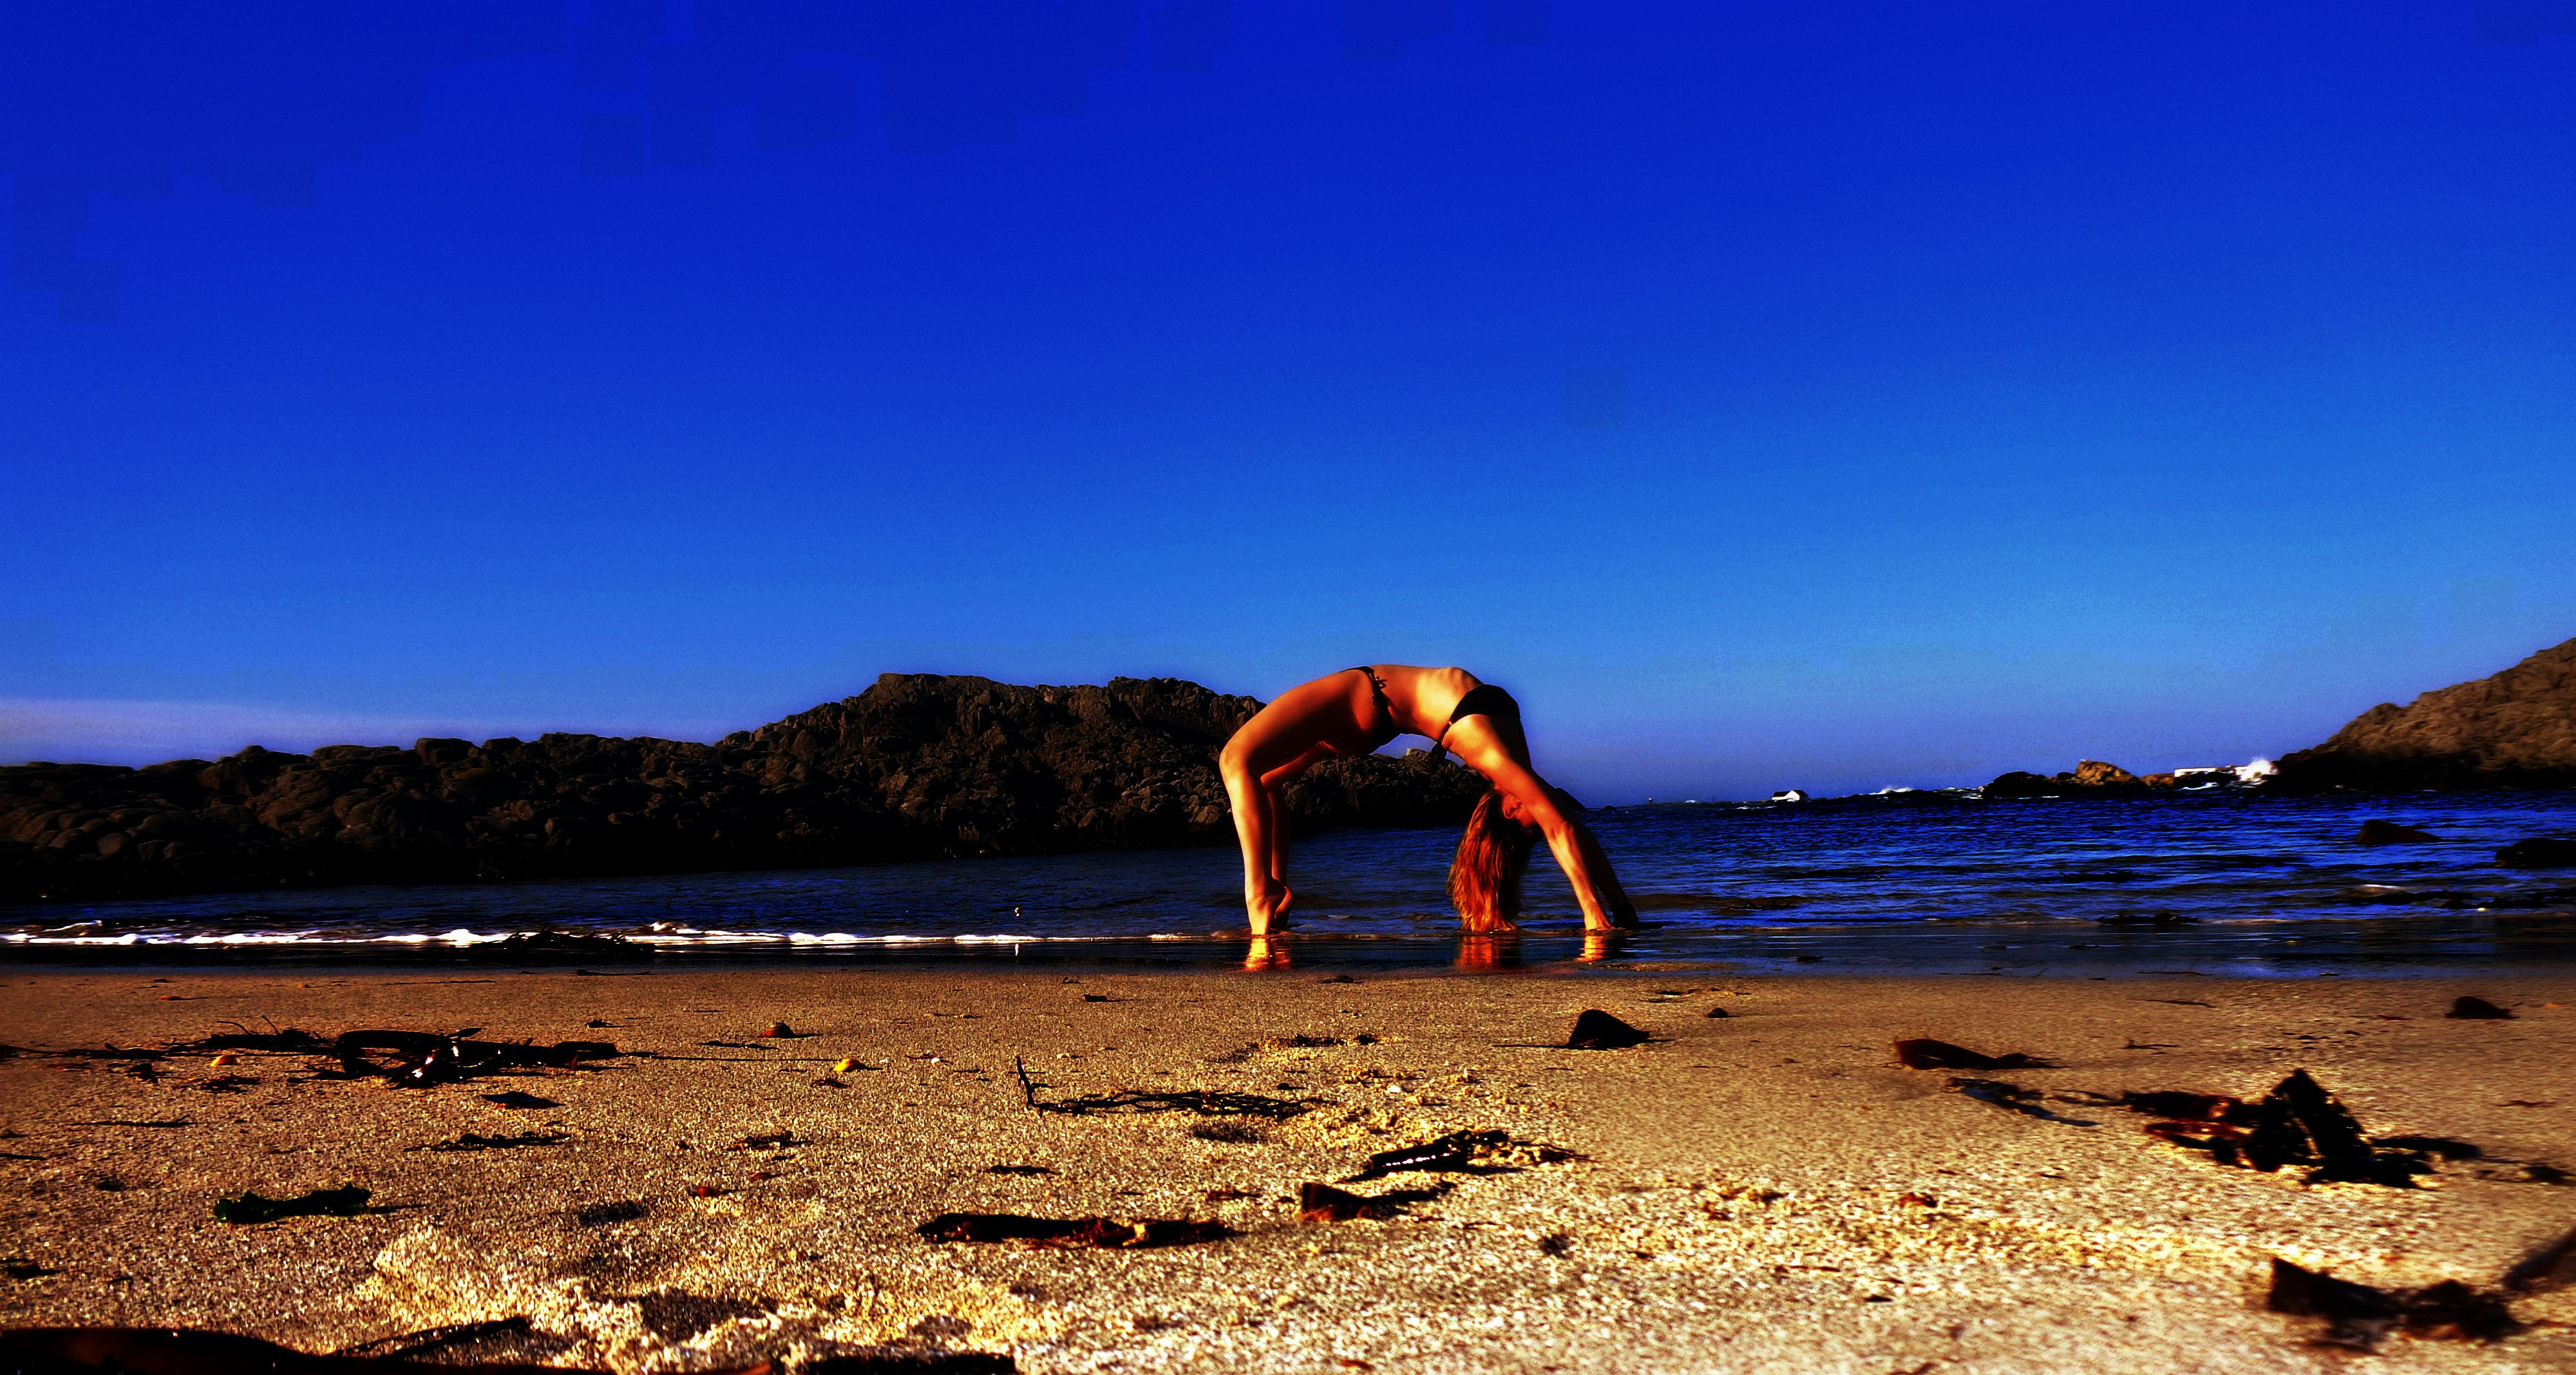 I simply love the feeling of the cold wateraround me.Makes me feel alive <3#BeachYoga #Love